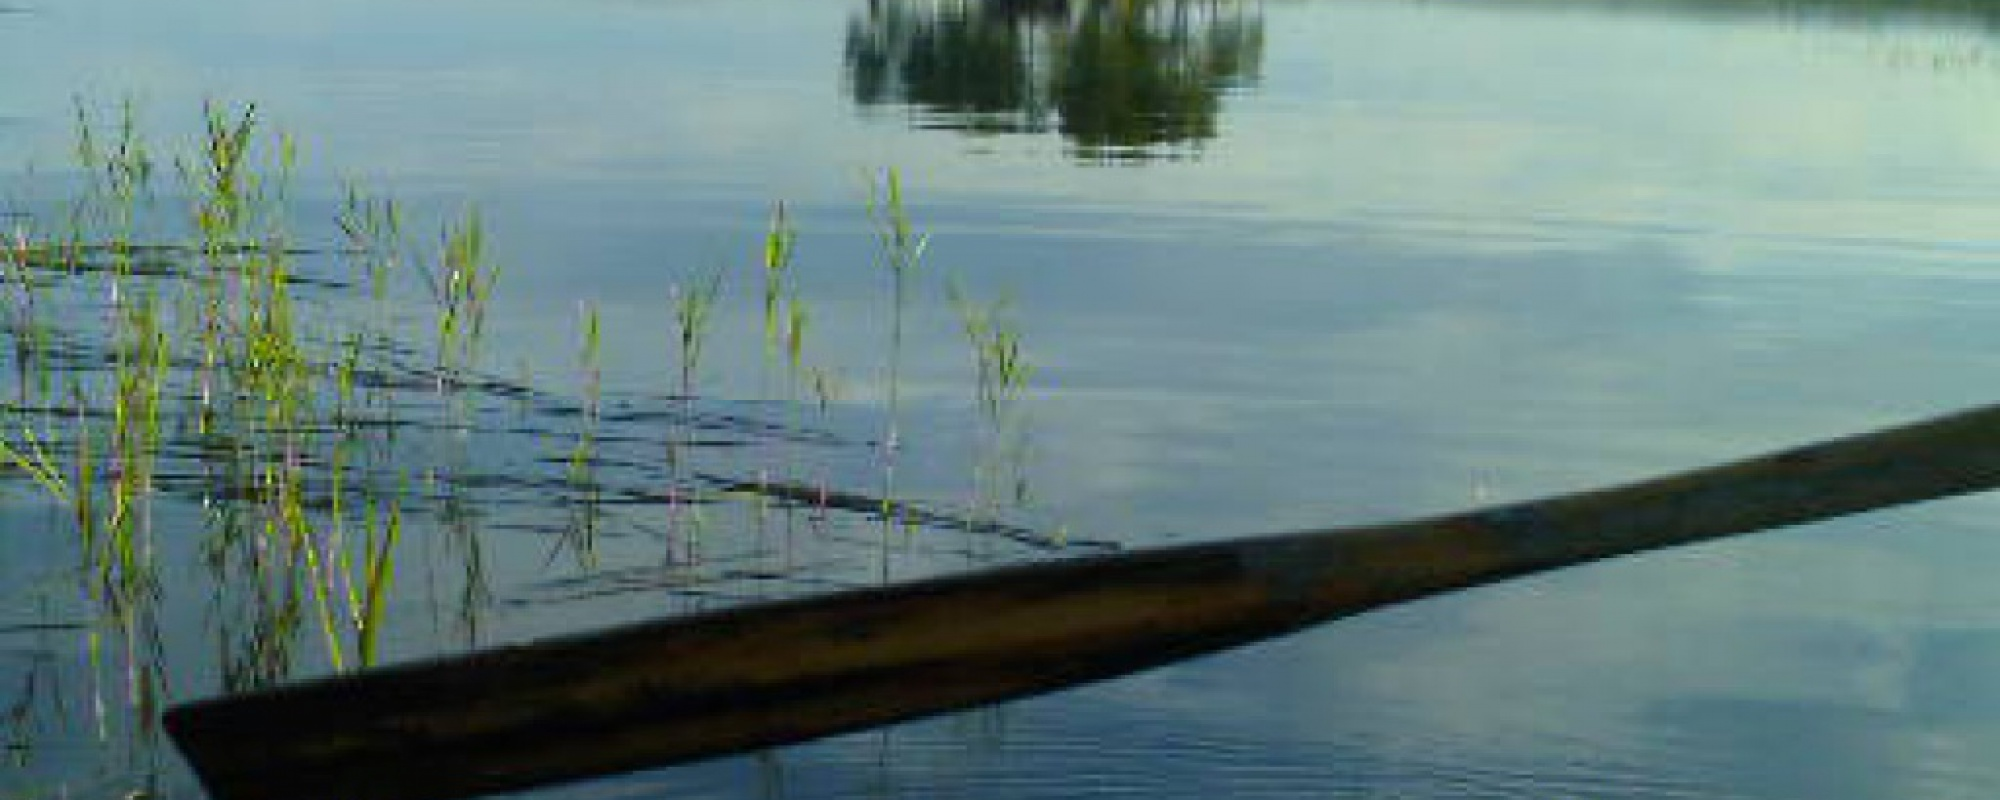 Rowboat in silence